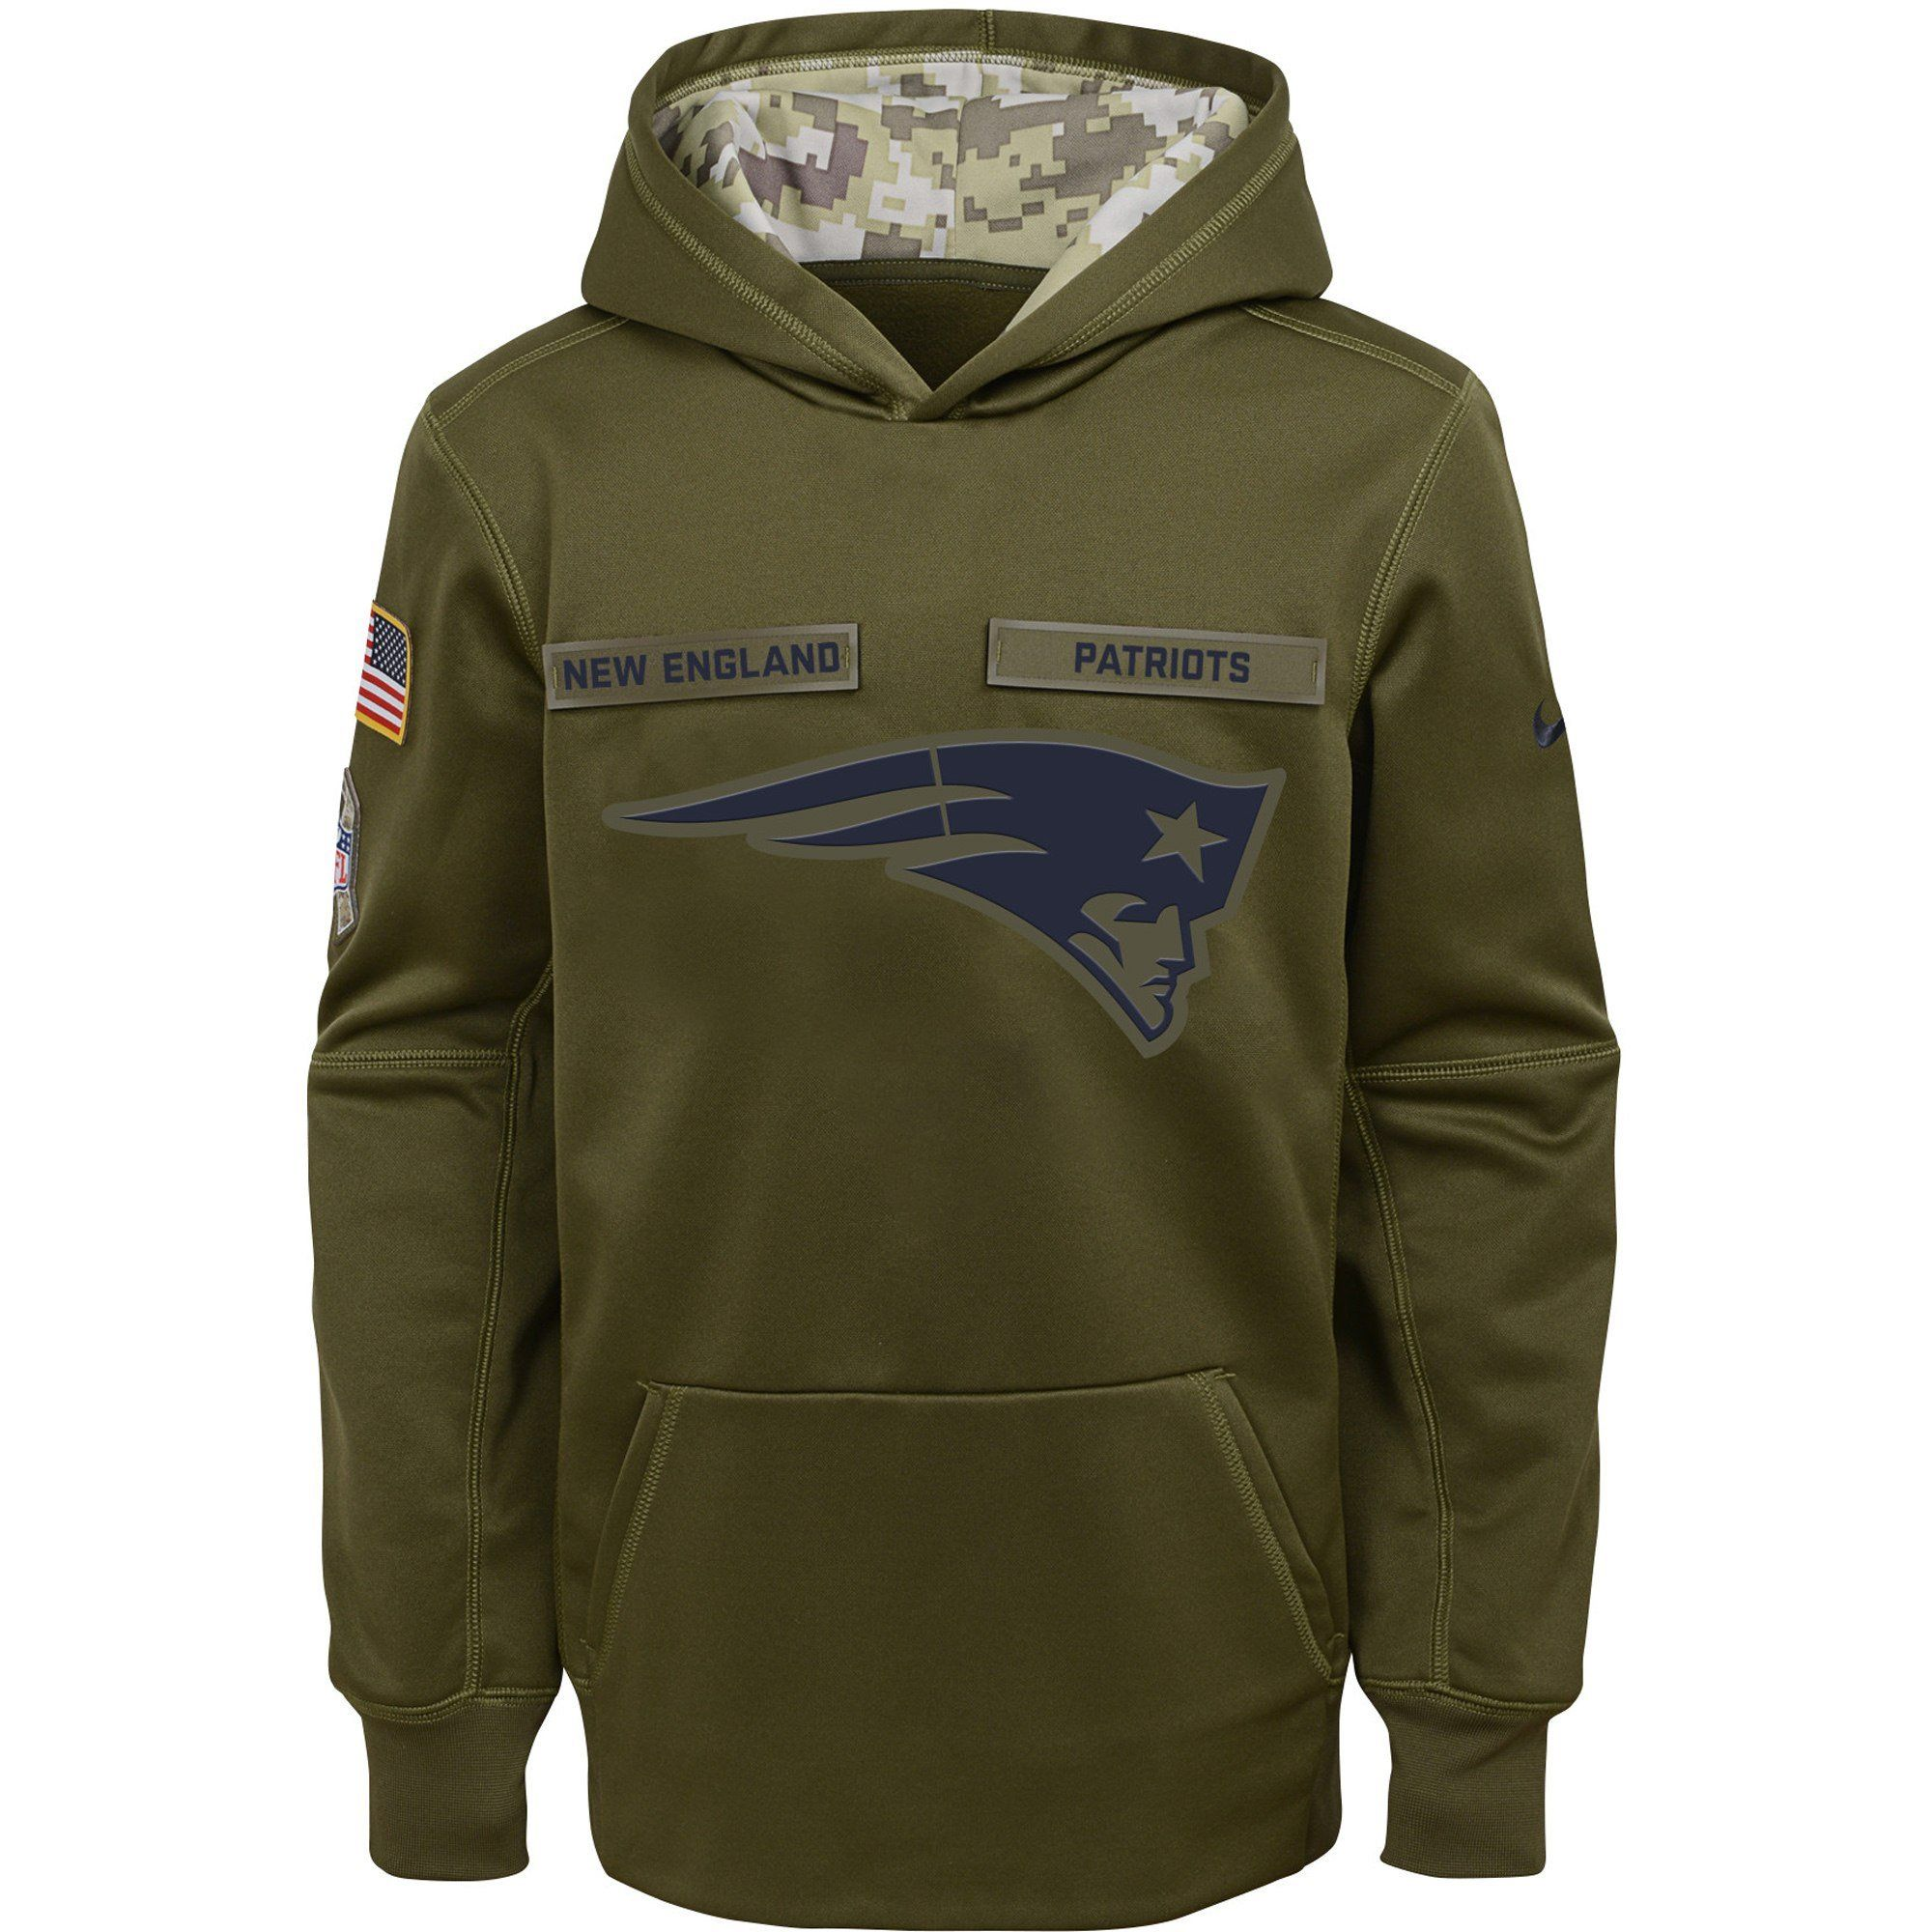 62c1ec027 Men's New England Patriots Nike Green Salute to Service Pullover  Performance Hoodie